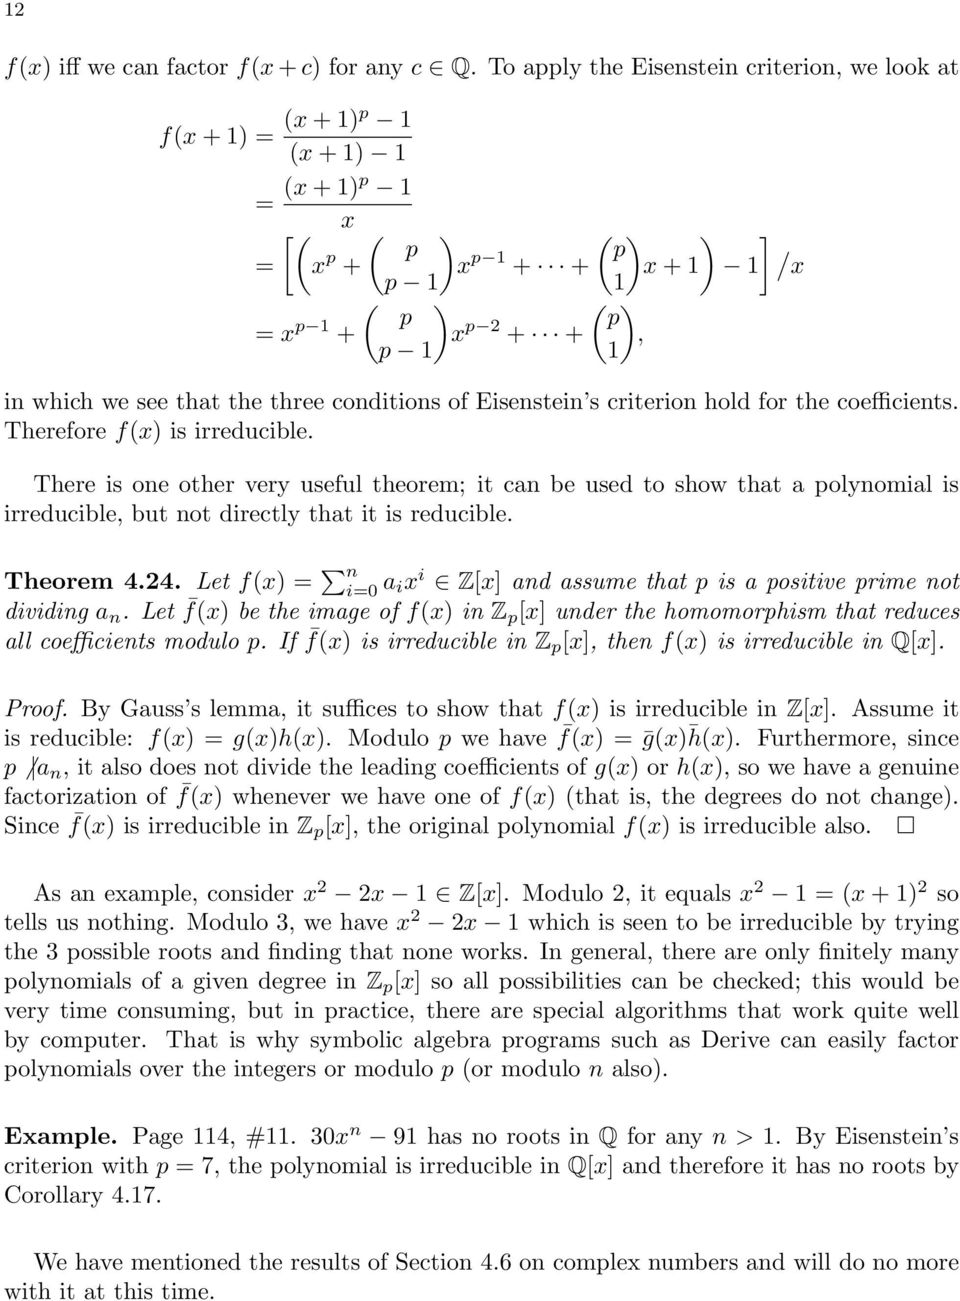 see that the three conditions of Eisenstein s criterion hold for the coefficients. Therefore f(x) is irreducible.